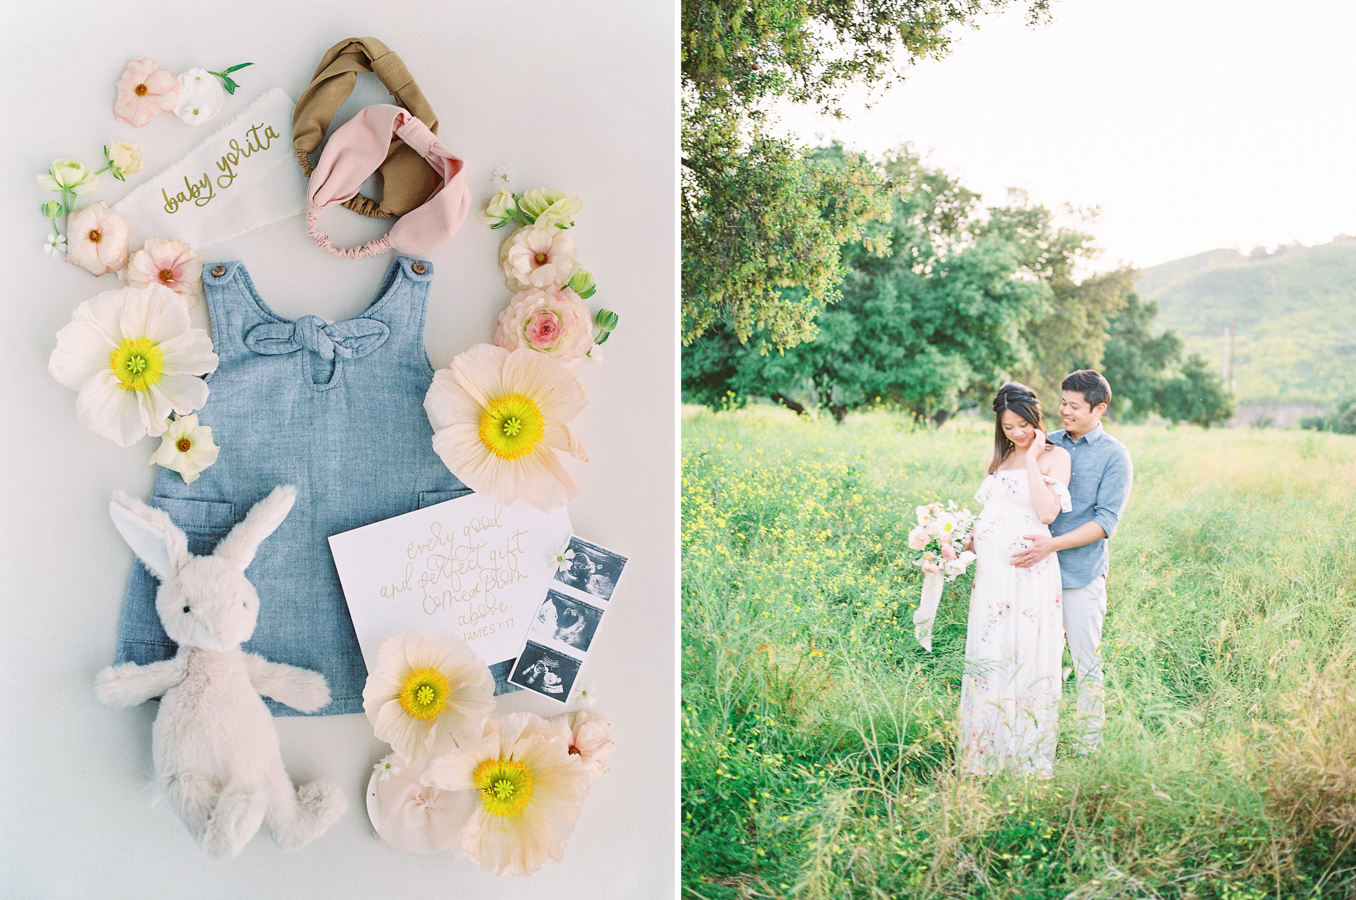 Maternity_Session_Family_Film_Photographer_Flower_Field_Los_Angeles_AKP-1.jpg